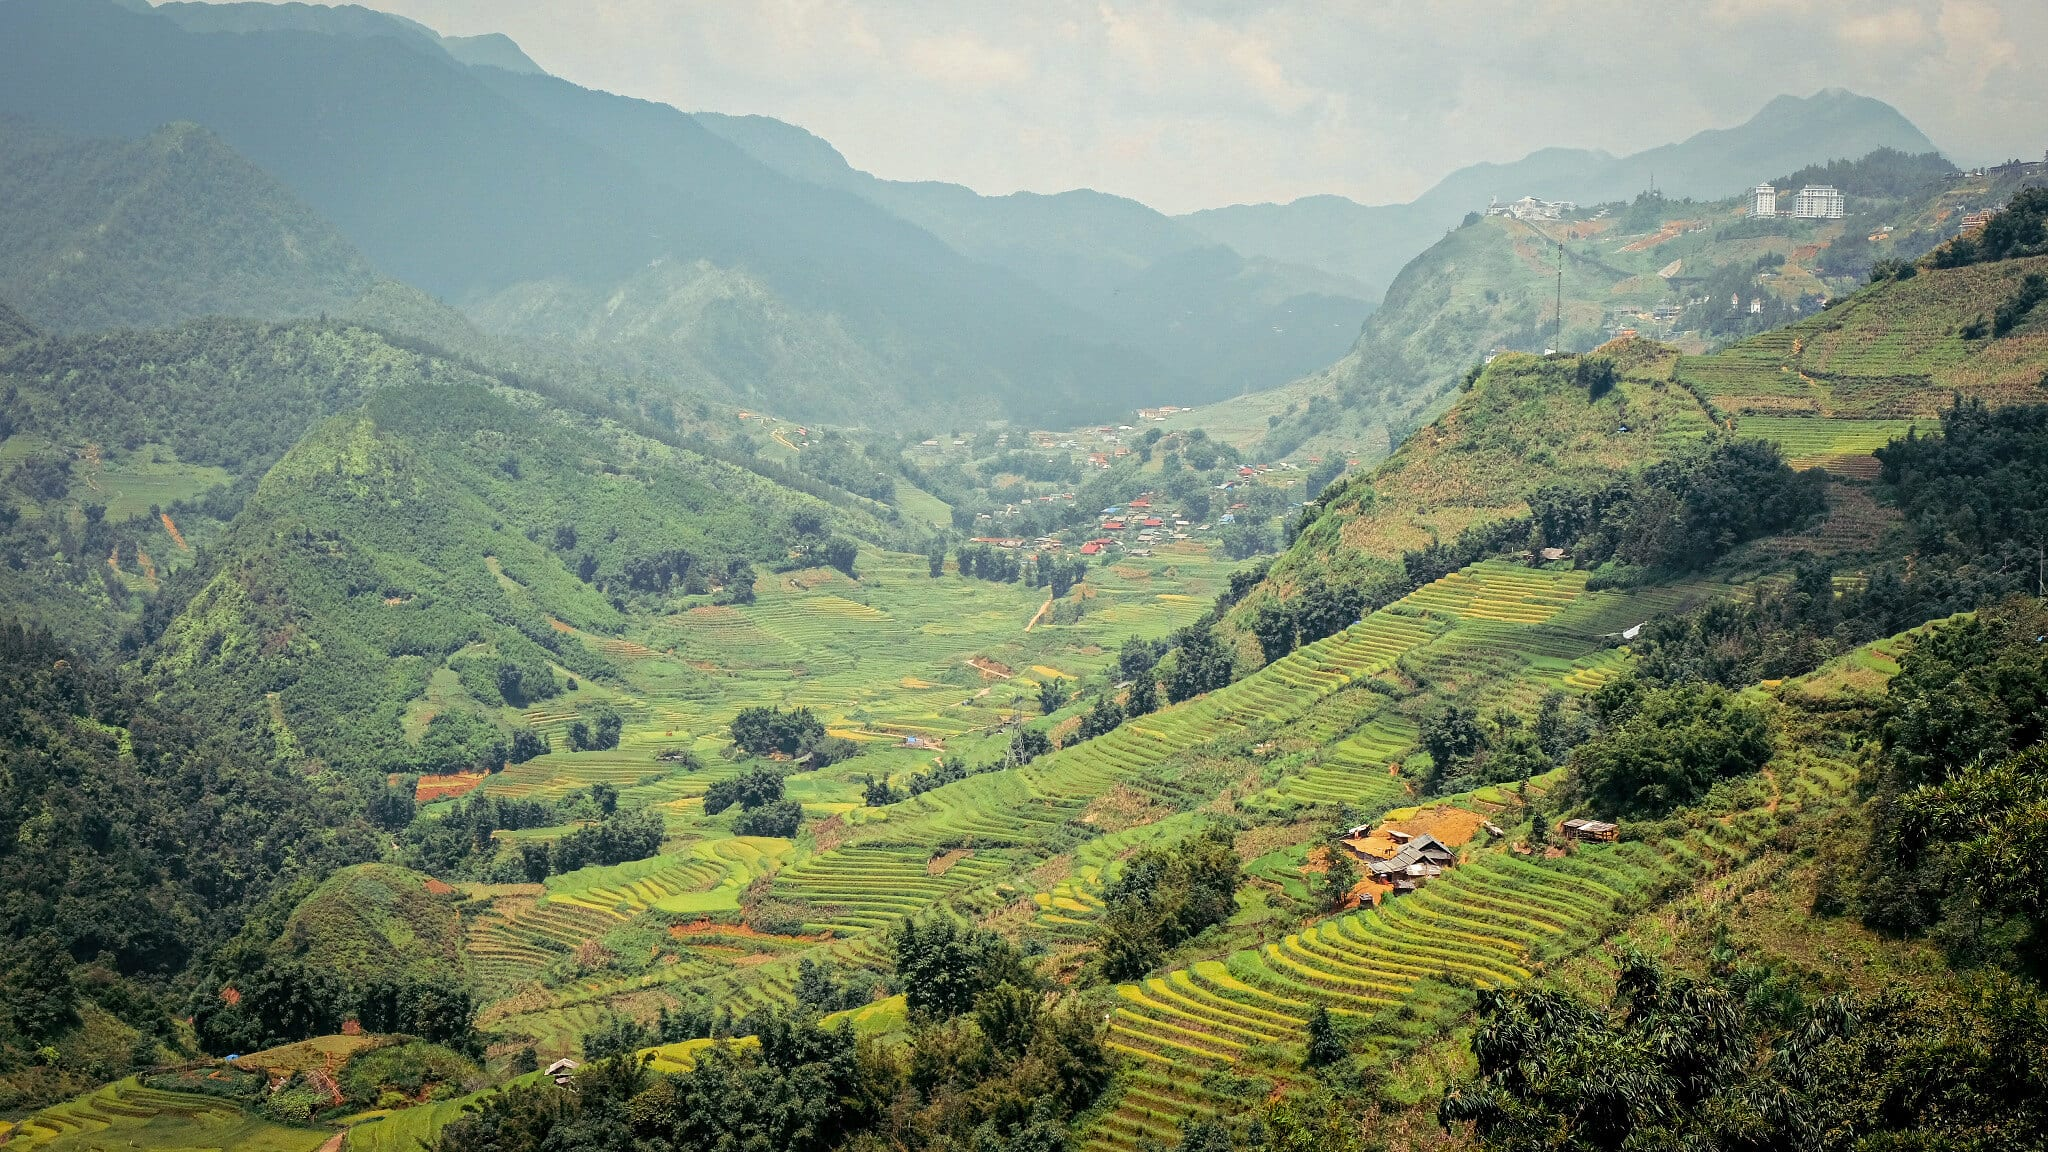 Image of the rice paddy fields and valley in Sapa, Vietnam